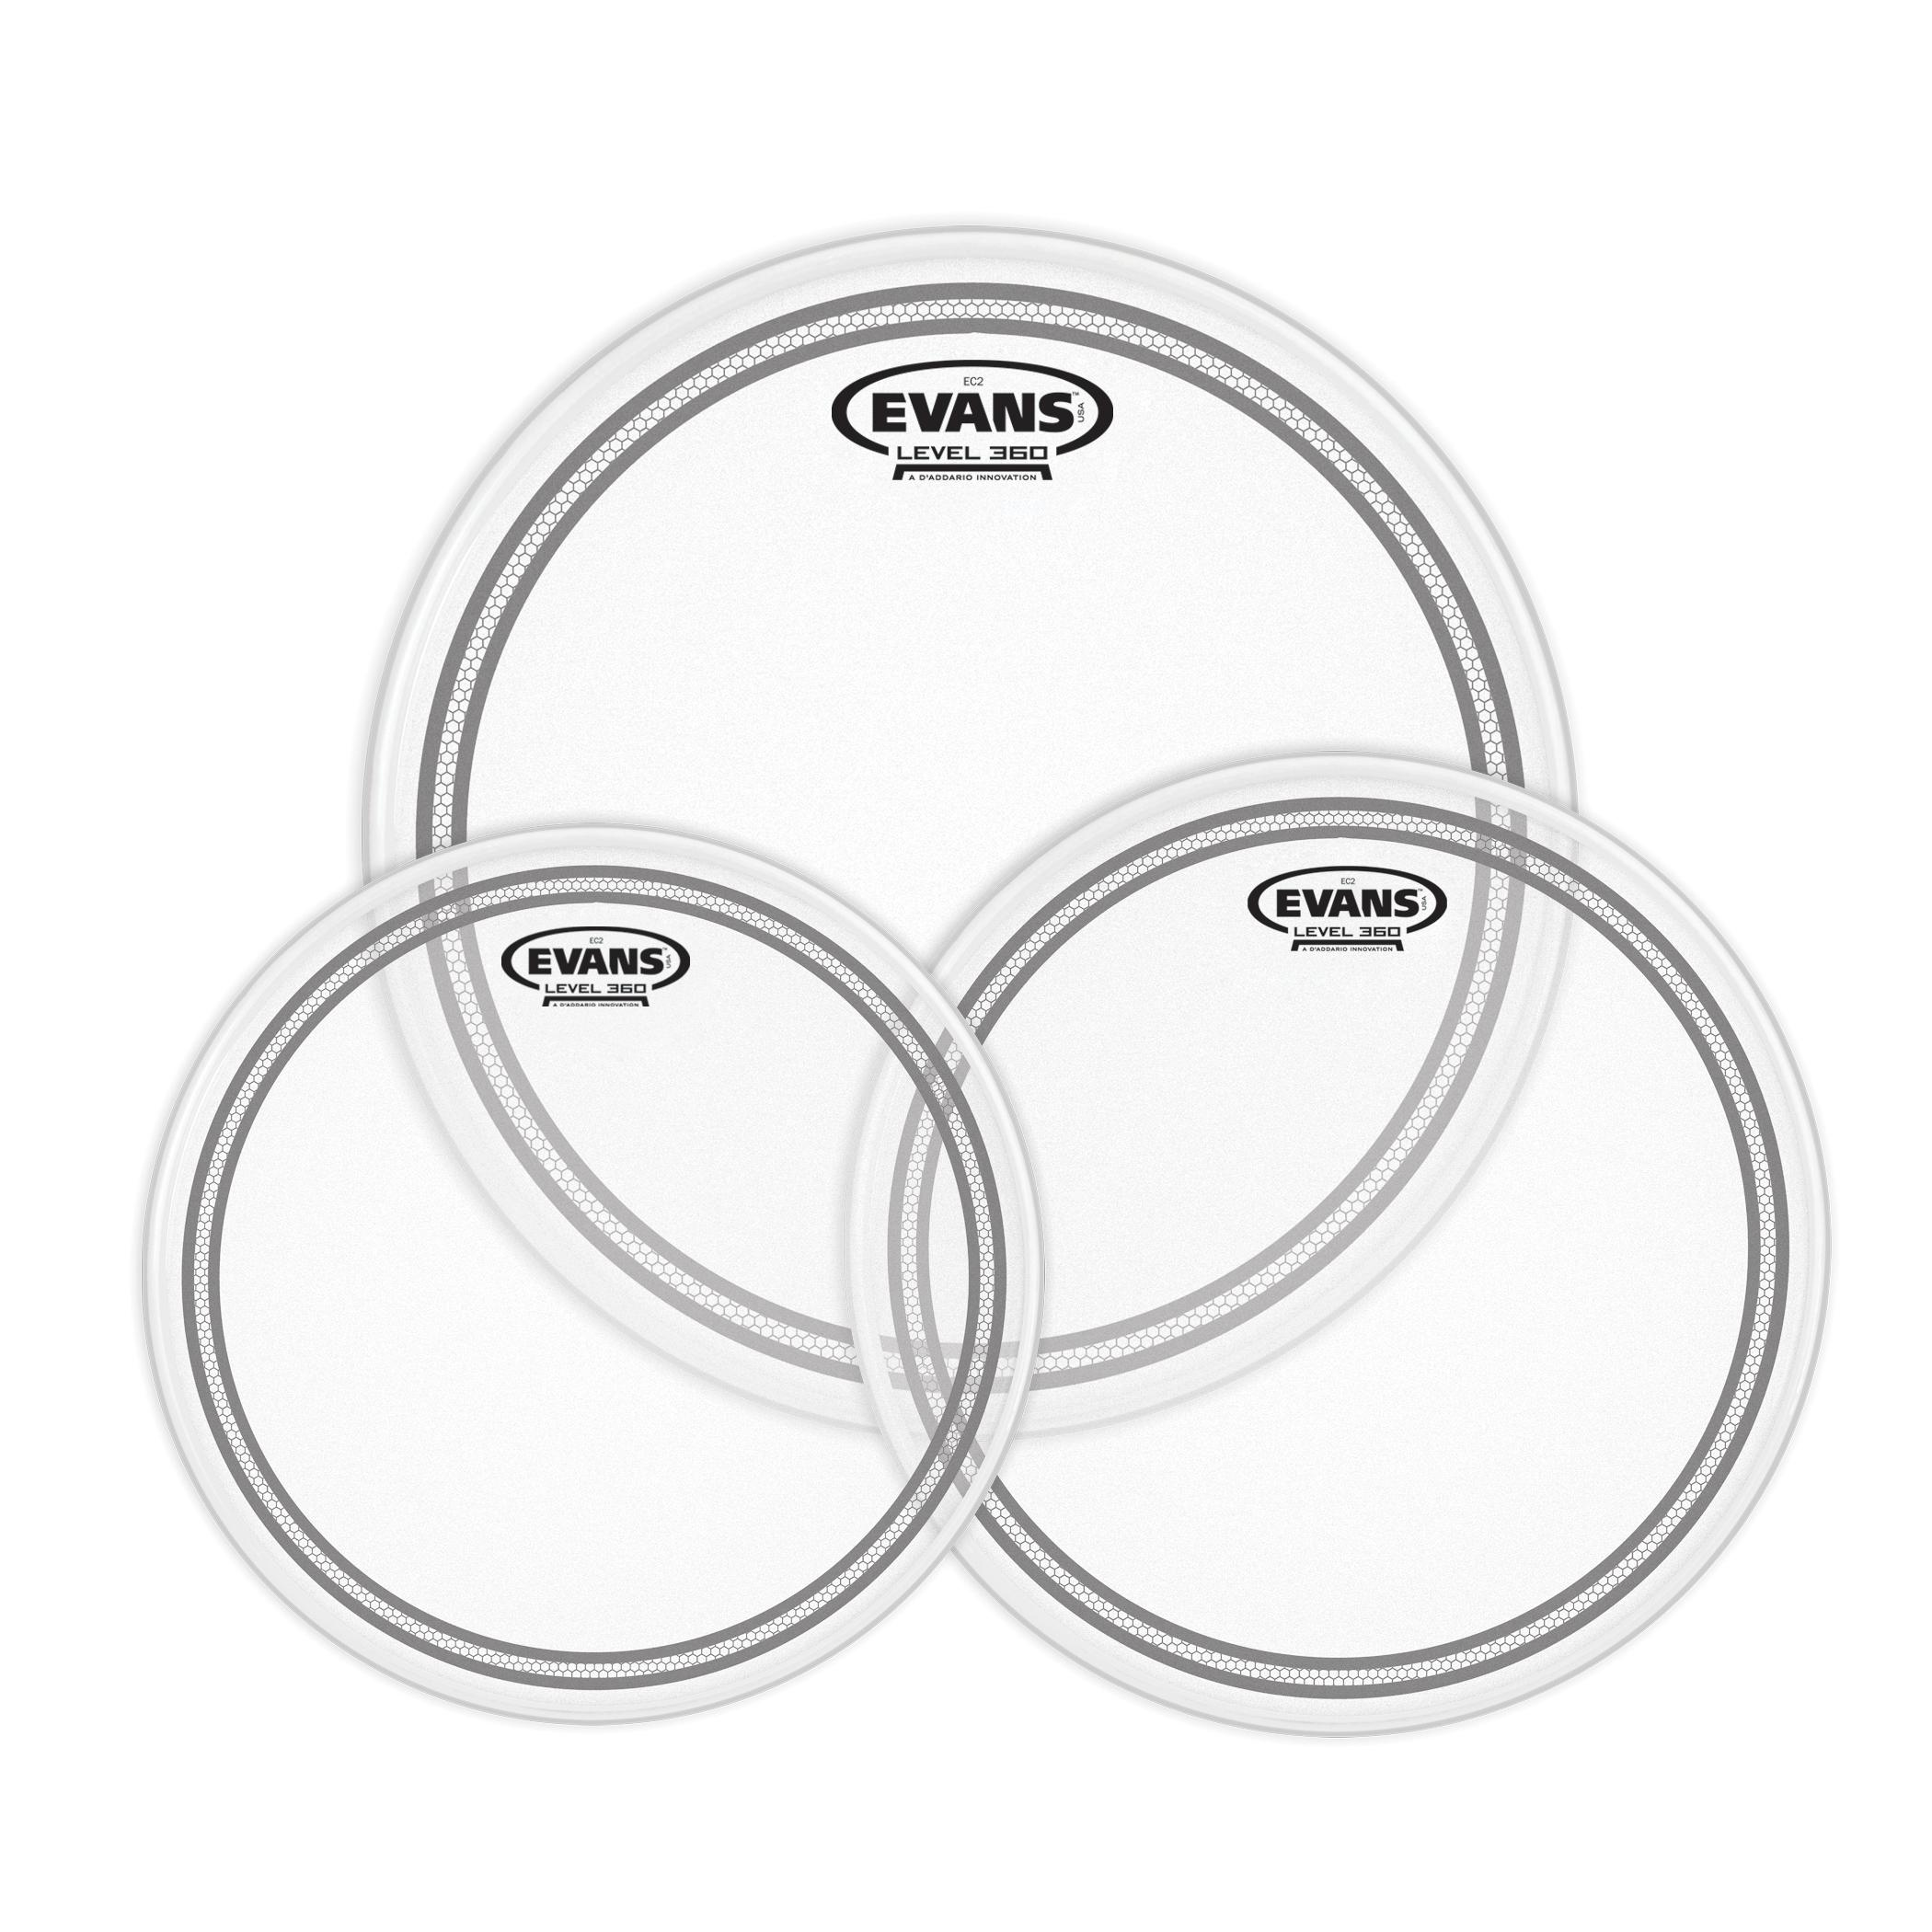 Evans Level 360 EC2 Clear Drum Heads Standard Tom Pack – 12″, 13″, 16″ 1